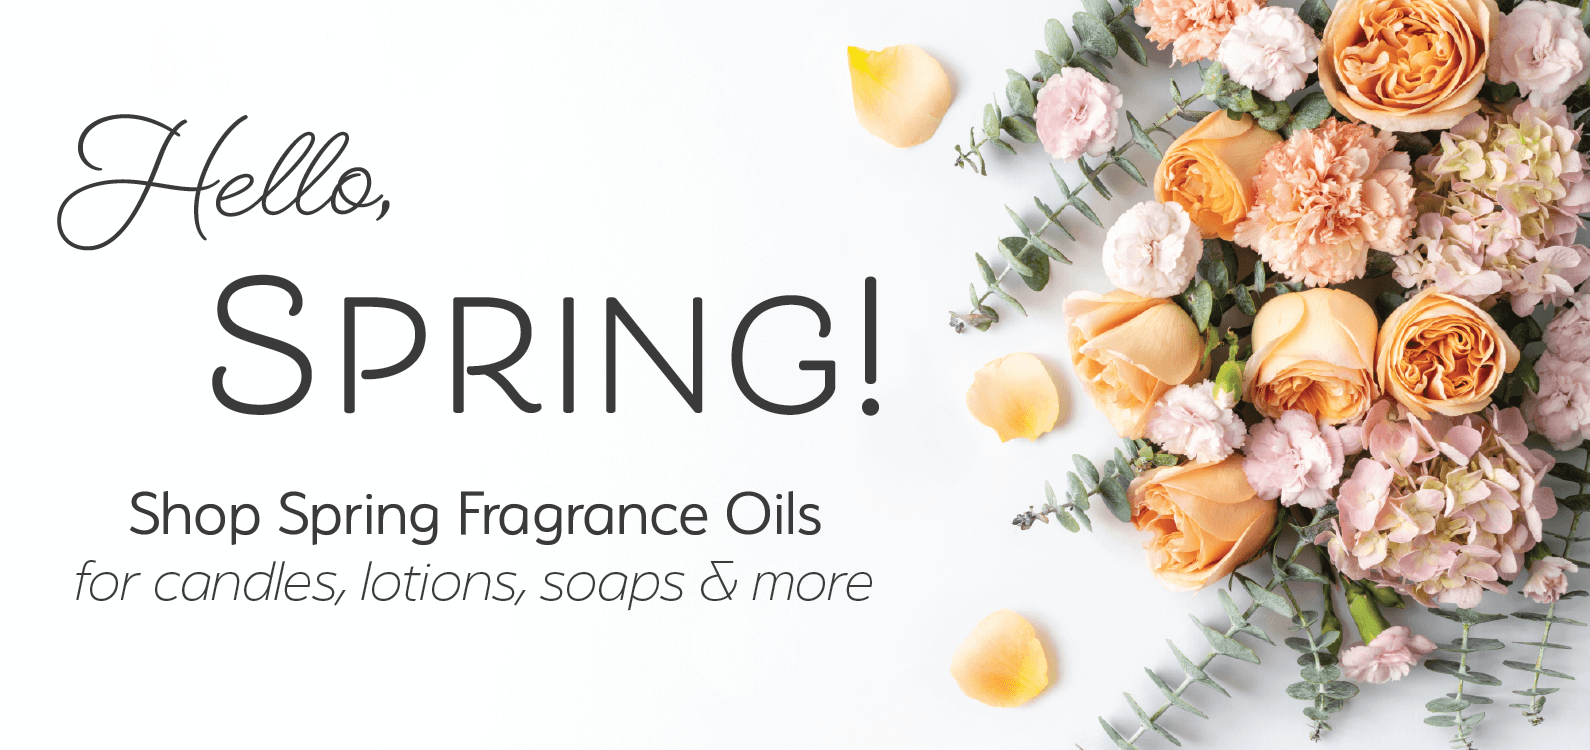 spring fragrance oils, orange roses, flowers